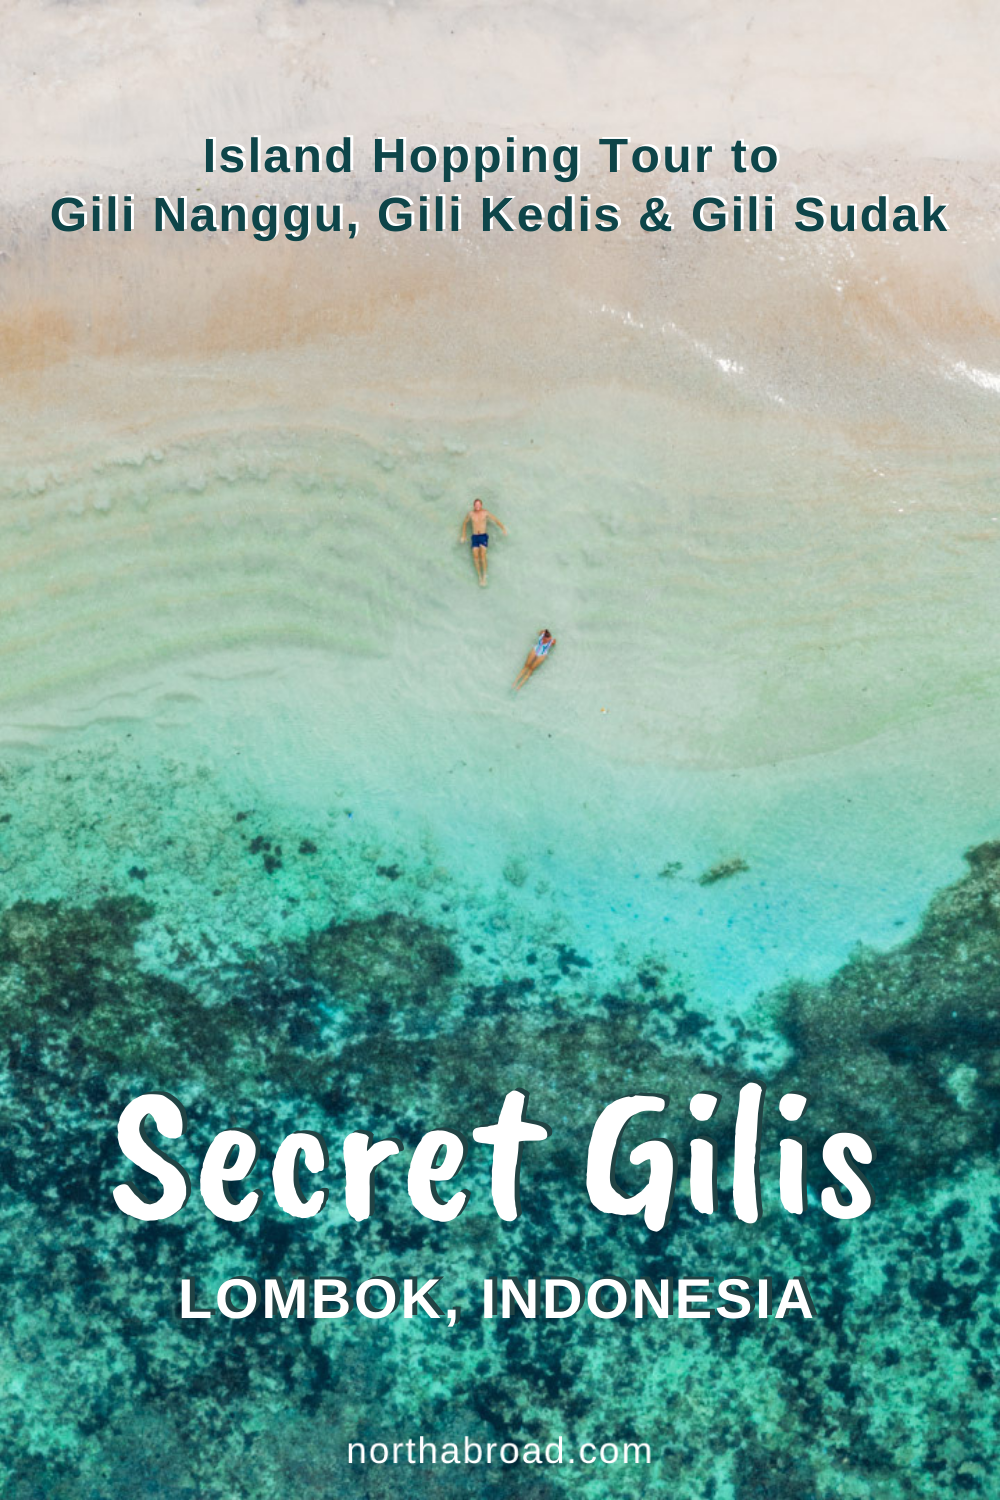 Travel Guide: Island Hopping Tour to the Secret Gilis from Lombok